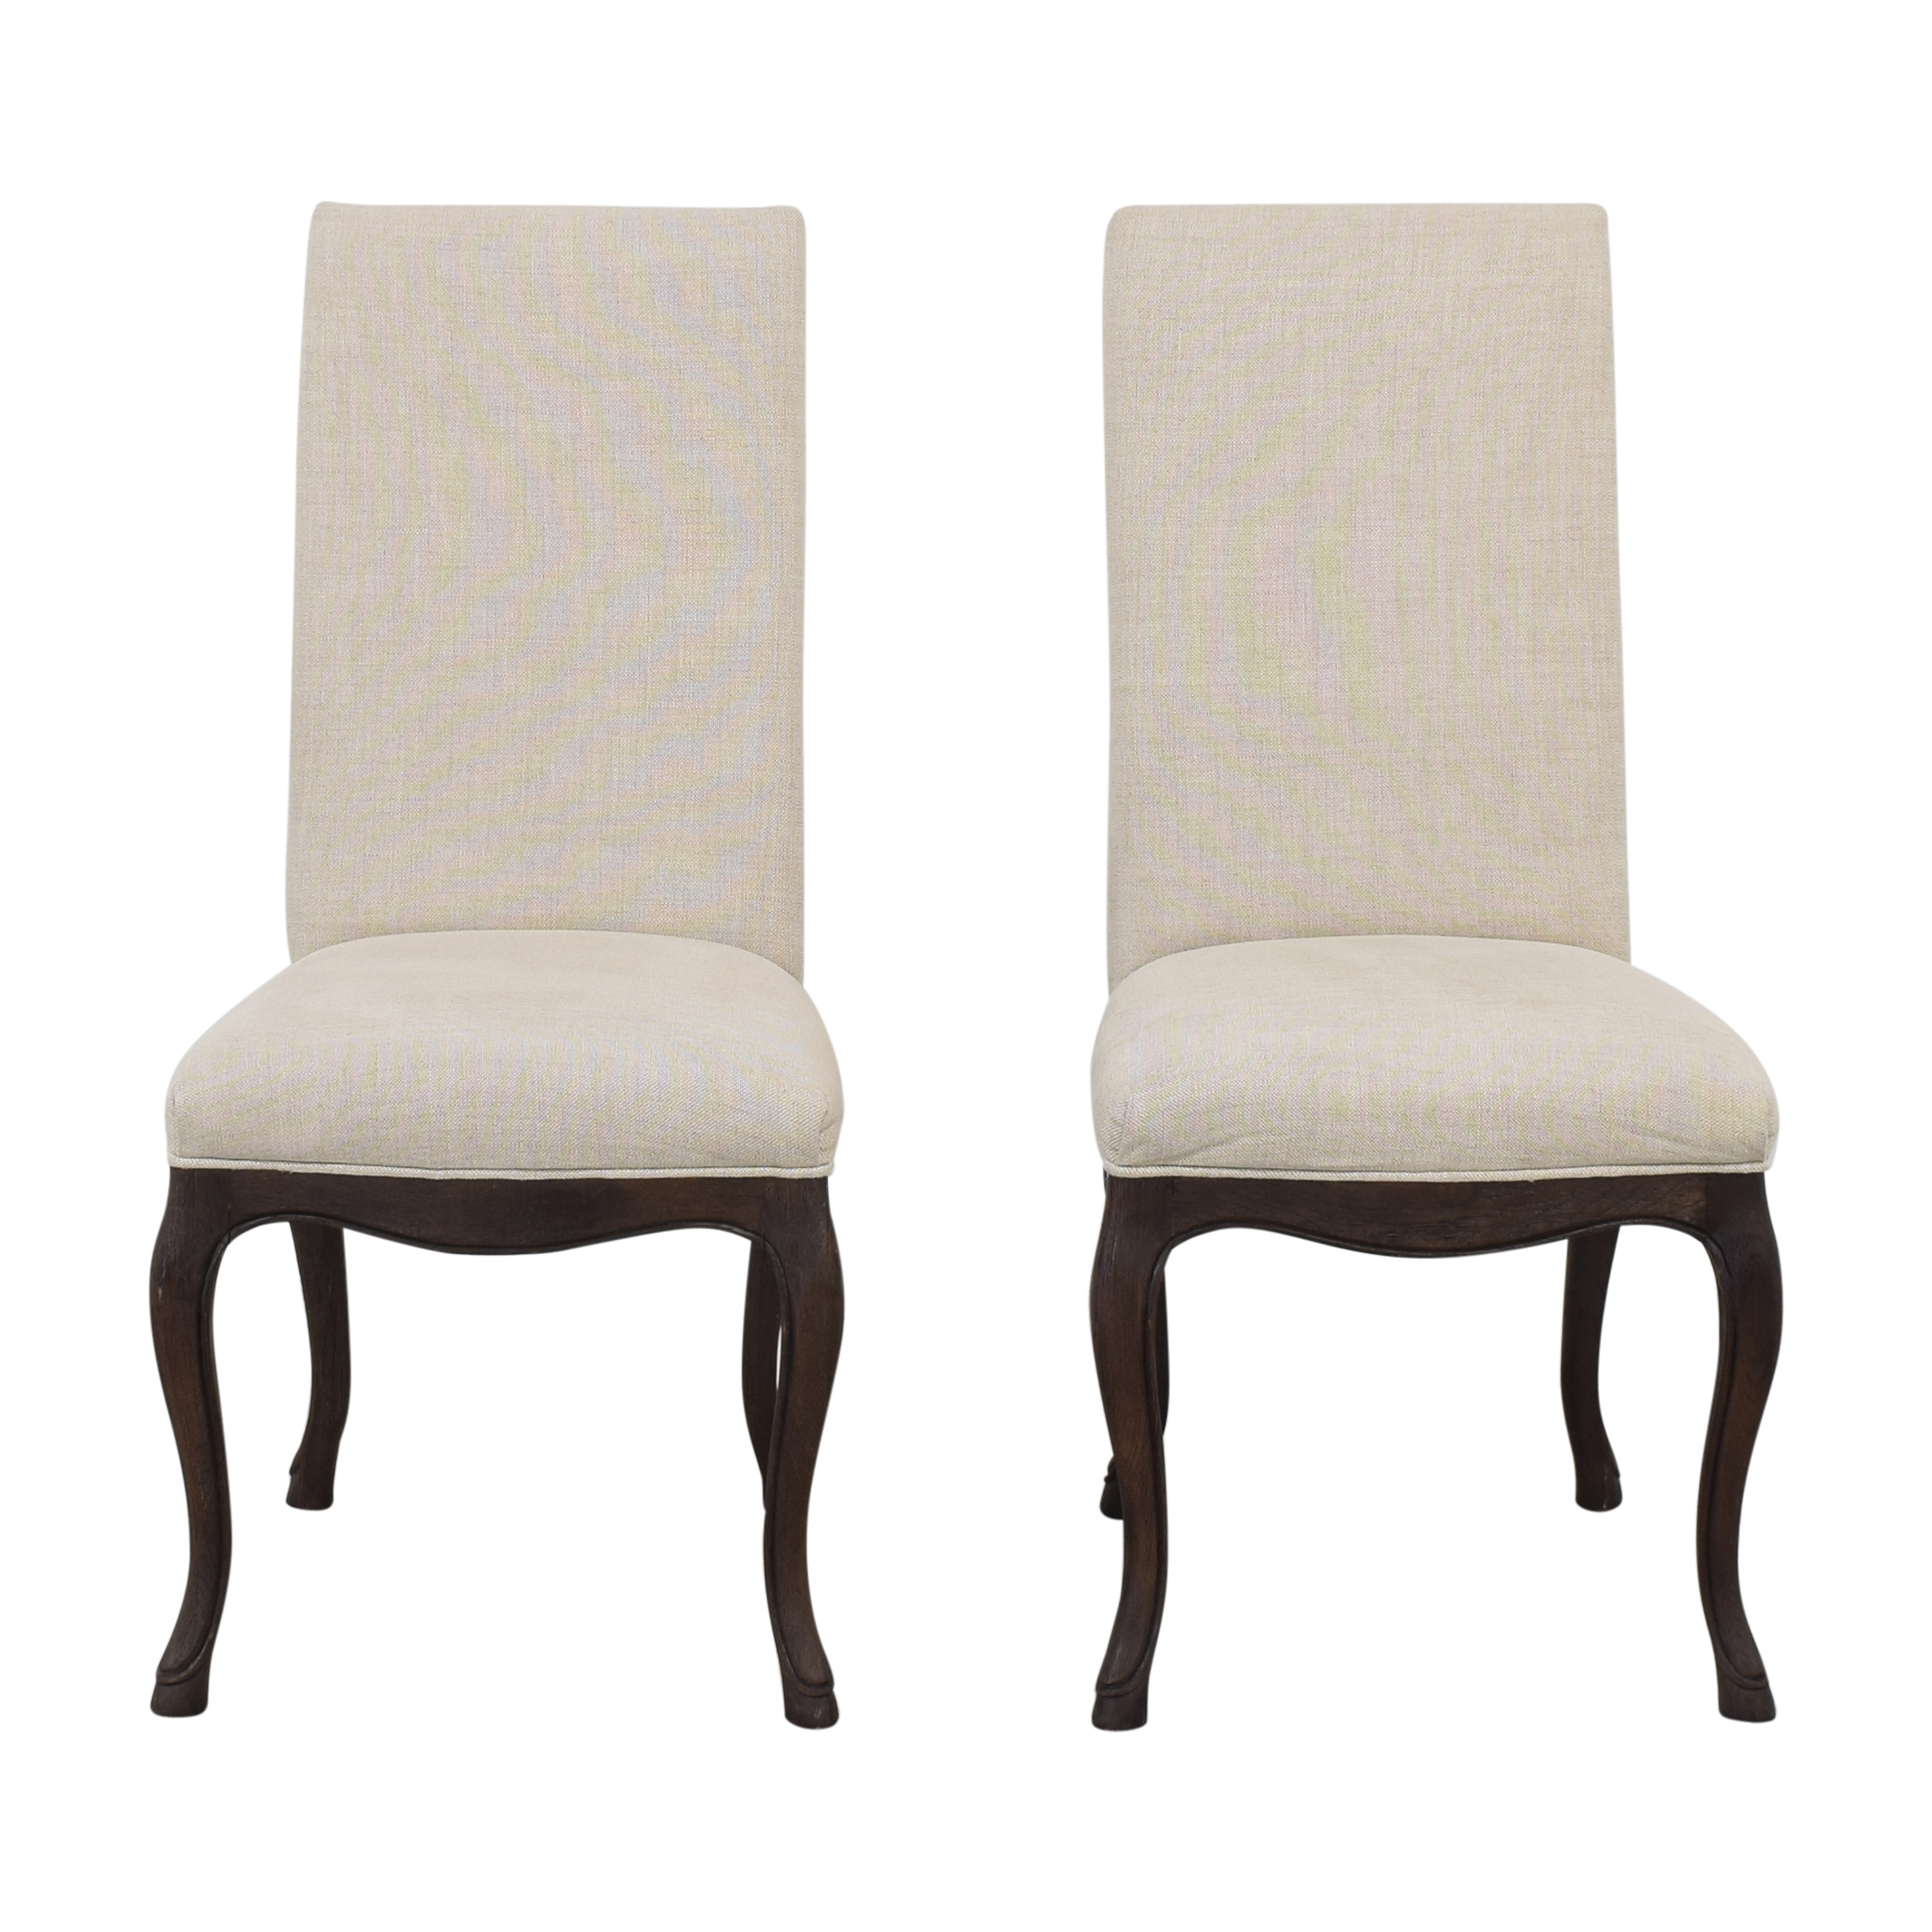 Restoration Hardware Louis XV Cabriole Chairs / Dining Chairs